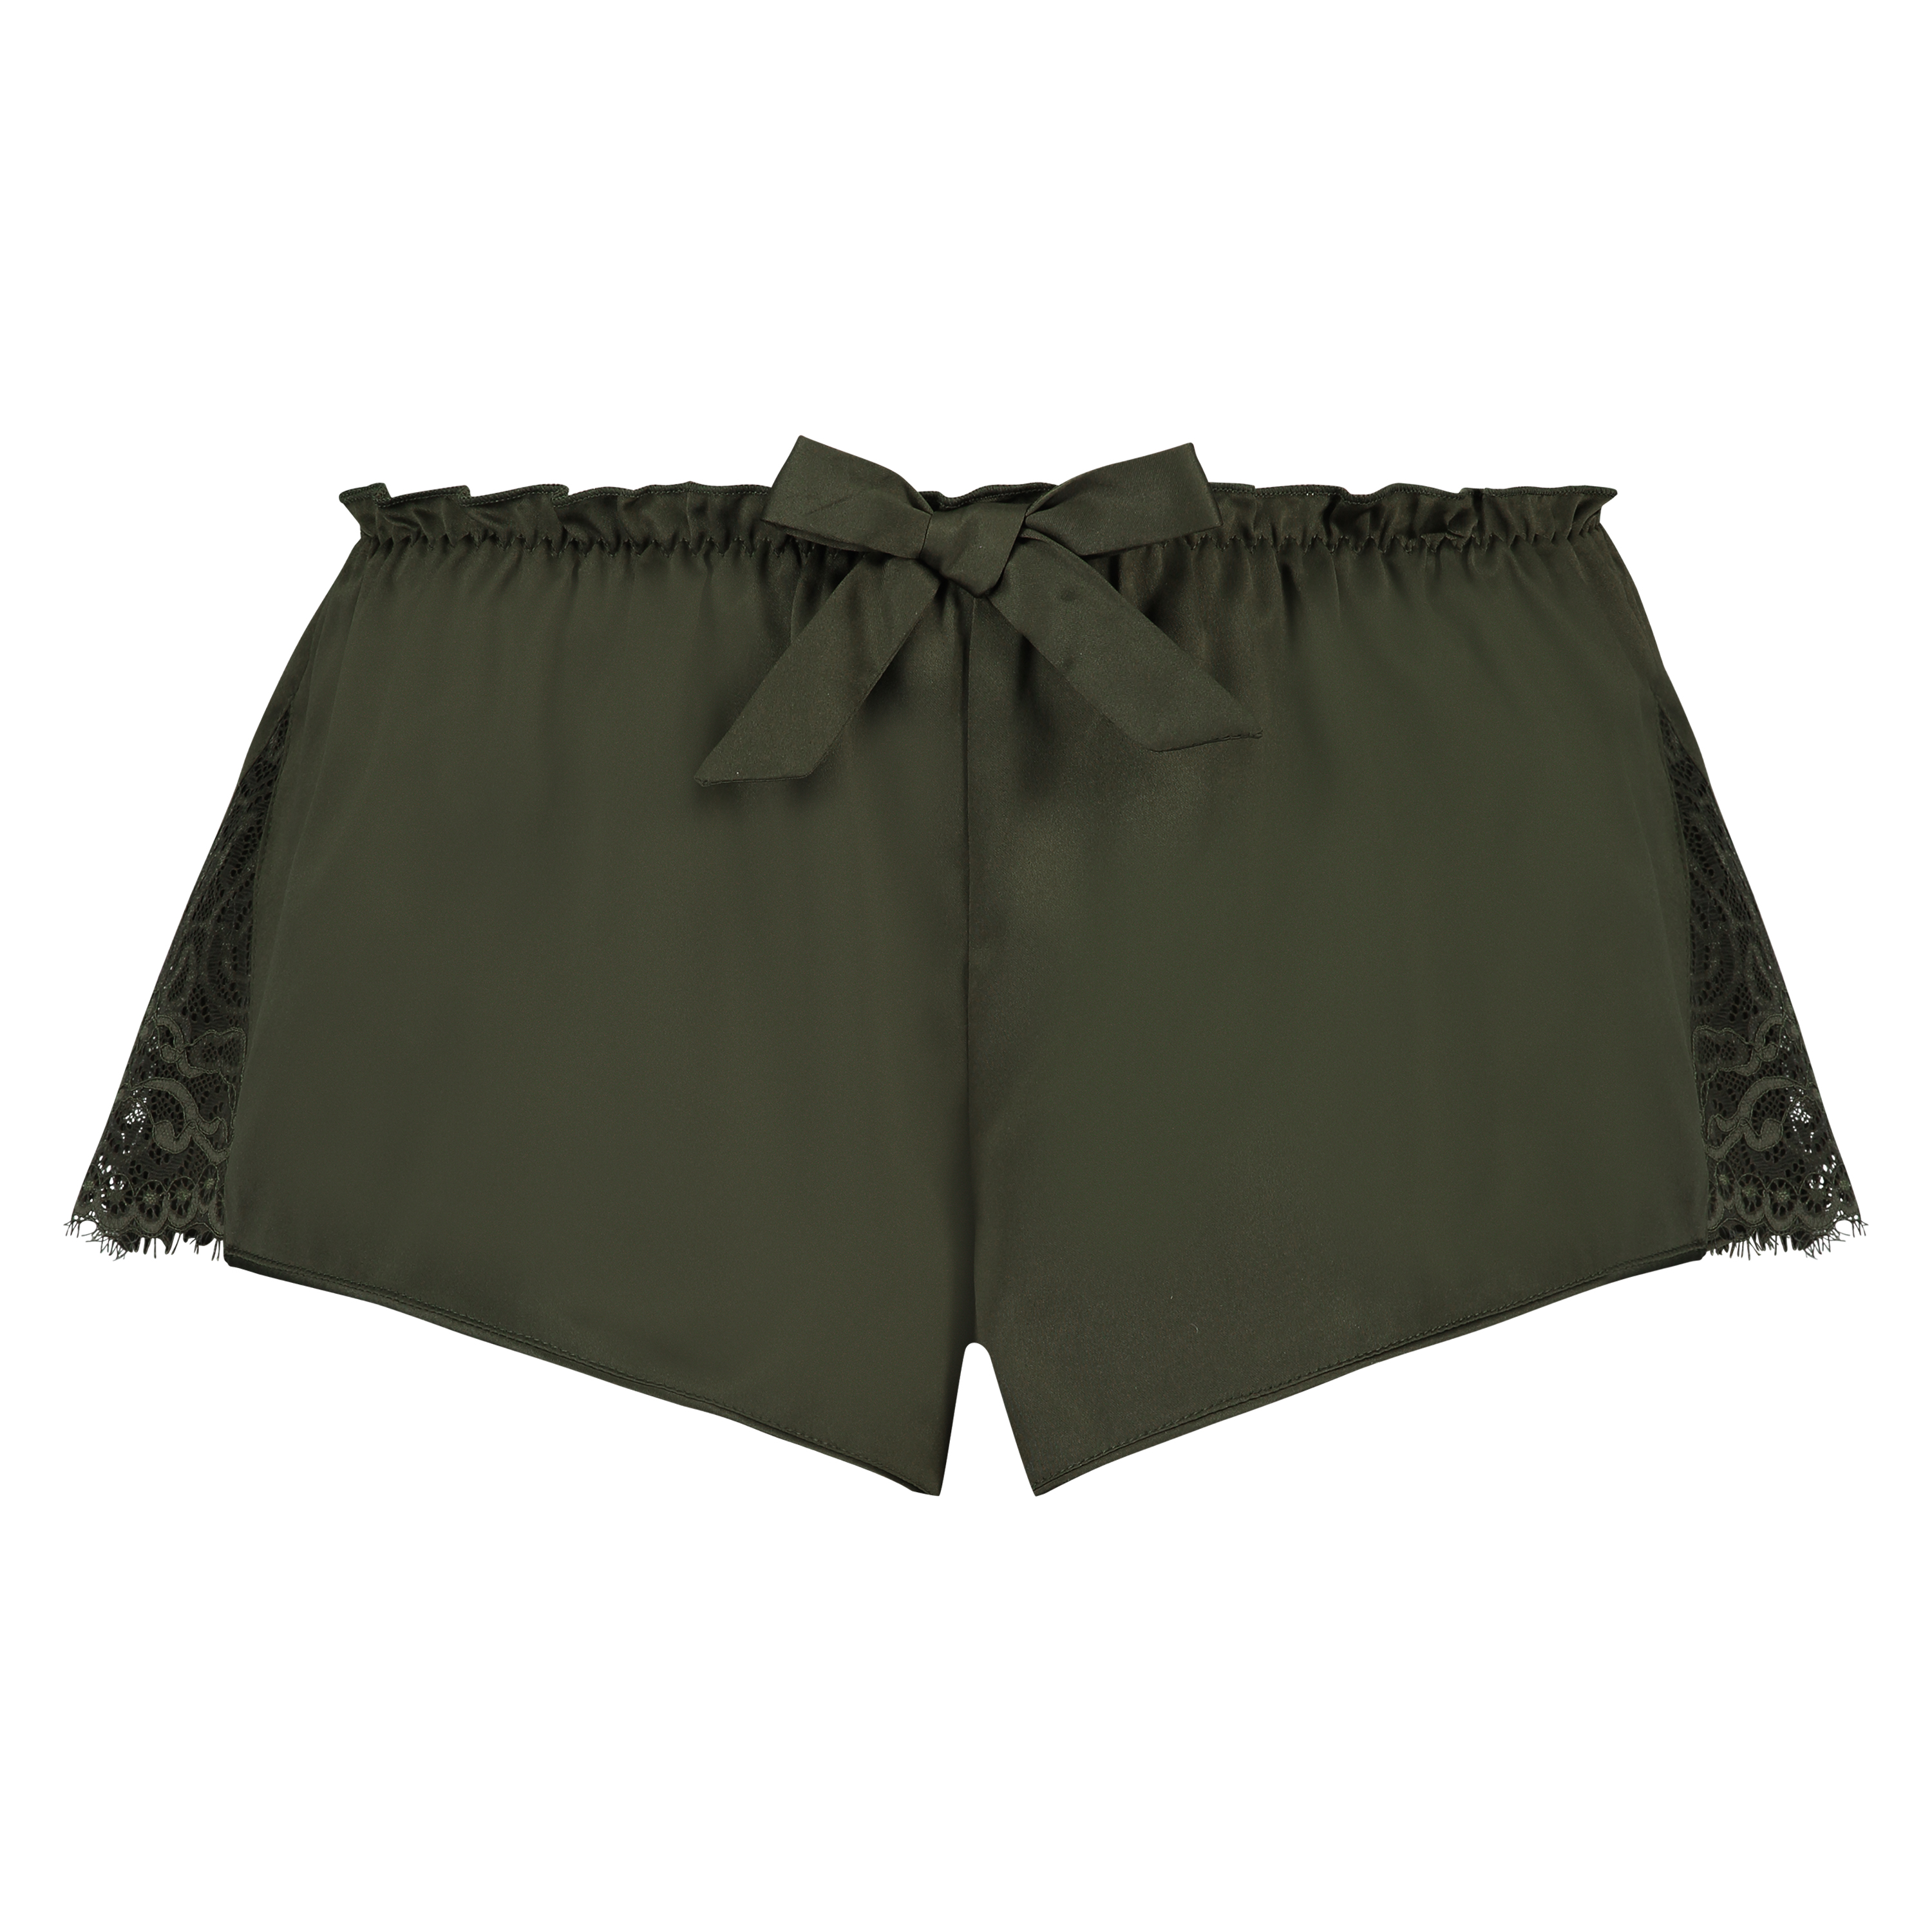 Pyjama short Satin, Groen, main